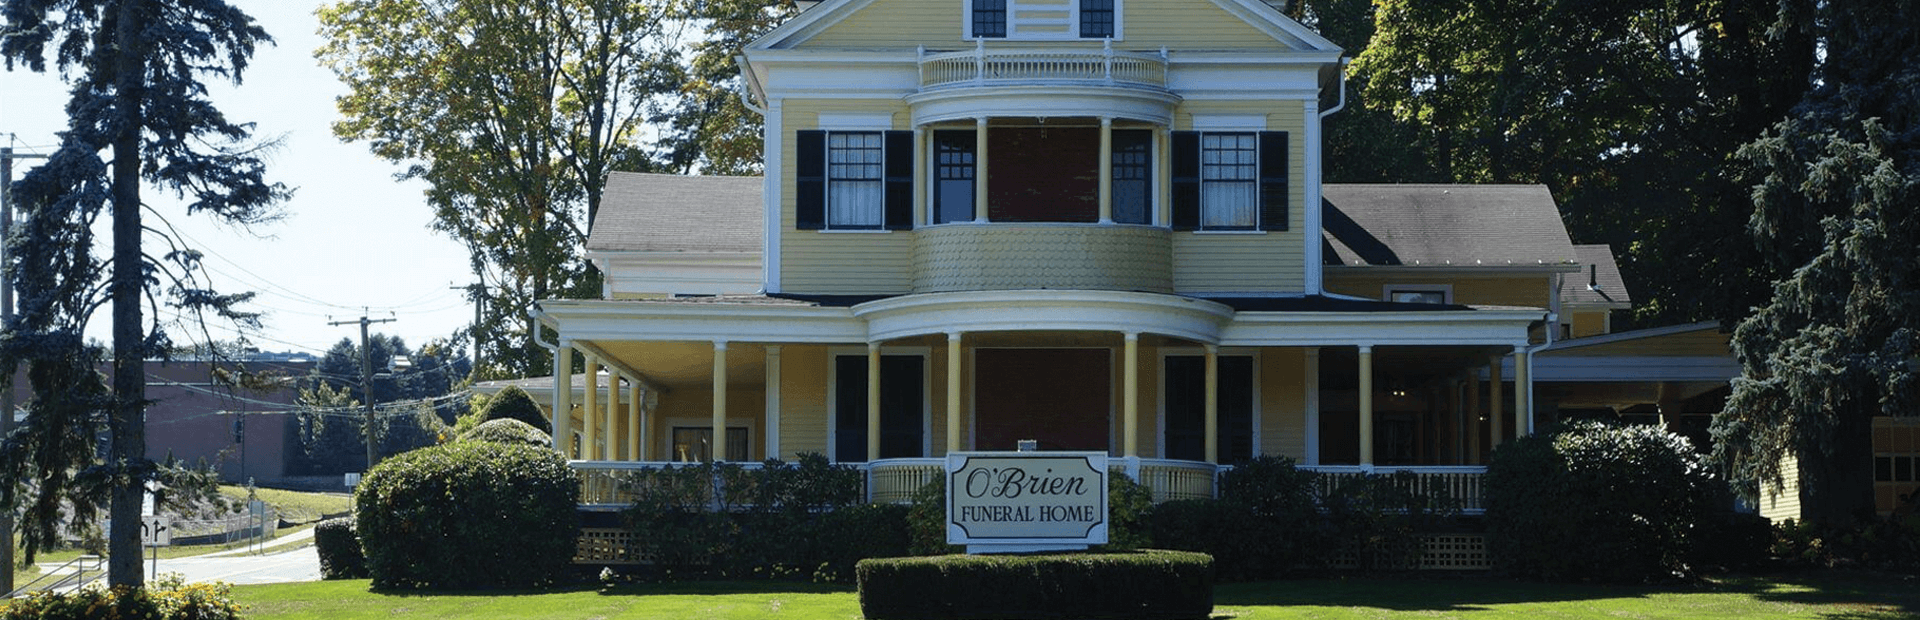 O'Brien funeral home and cremations in Bristol CT